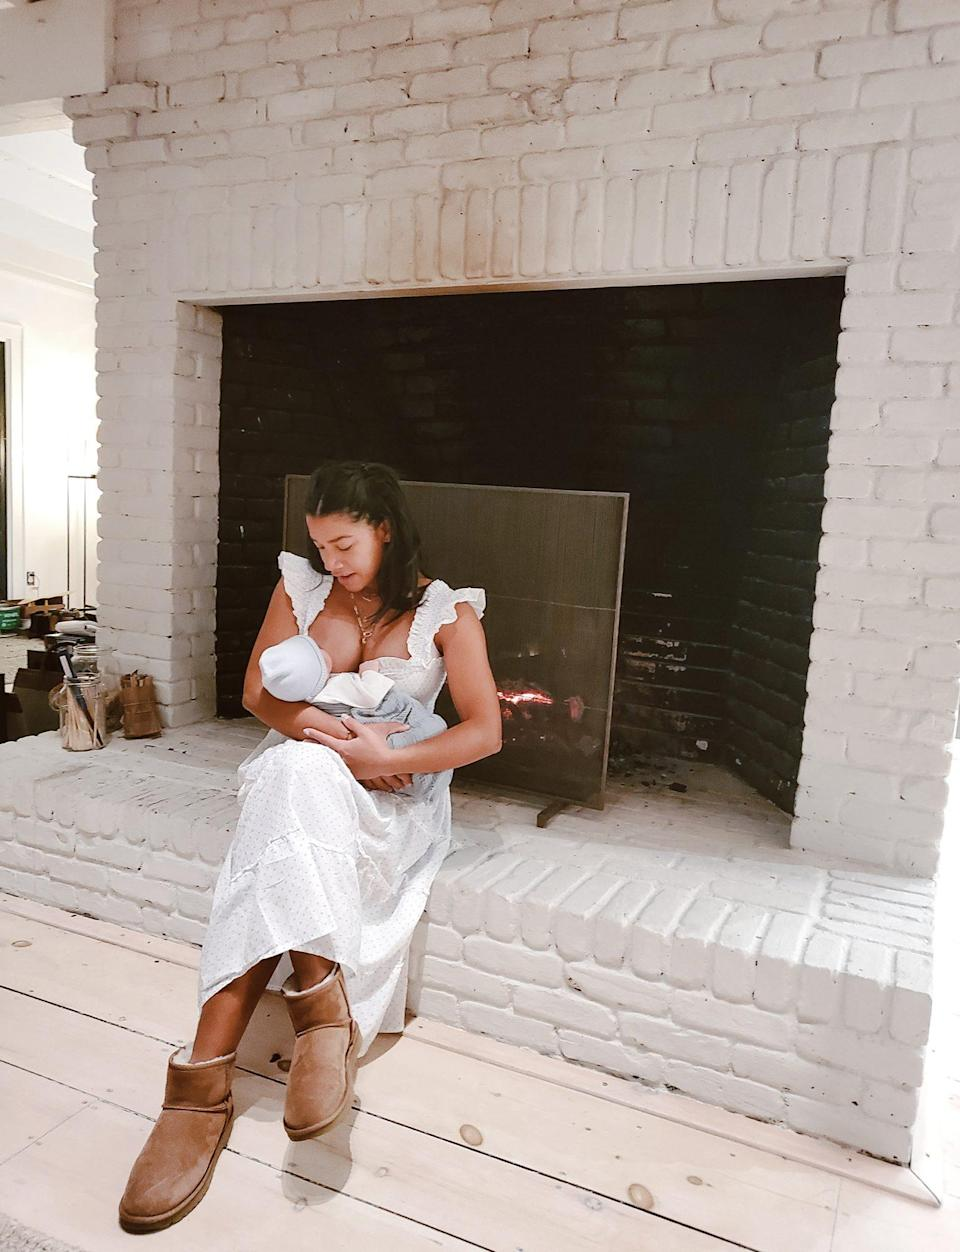 """<p>""""Living for these moments. The breastfeeding journey is real,"""" writes the influencer, who <a href=""""https://people.com/parents/hannah-bronfman-welcomes-son-preston-announces-birth-with-help-from-barack-obama/"""" rel=""""nofollow noopener"""" target=""""_blank"""" data-ylk=""""slk:welcomed her first child"""" class=""""link rapid-noclick-resp"""">welcomed her first child</a>, son Preston Miles Thomas Fallis, with husband Brendan Fallis in November 2020. </p> <p>""""I definitely don't have it figured out but one thing that is saving me is laughter!"""" Bronfman writes. """"Every time I get spit up on, or spill my Haakaa full of milk, or have to spend 20 minutes blowing on his face to wake this sleepy boy up, I take a deep breath and let it roll off my back and let out a chuckle, because these are the moments I've been waiting so long for.""""</p>"""